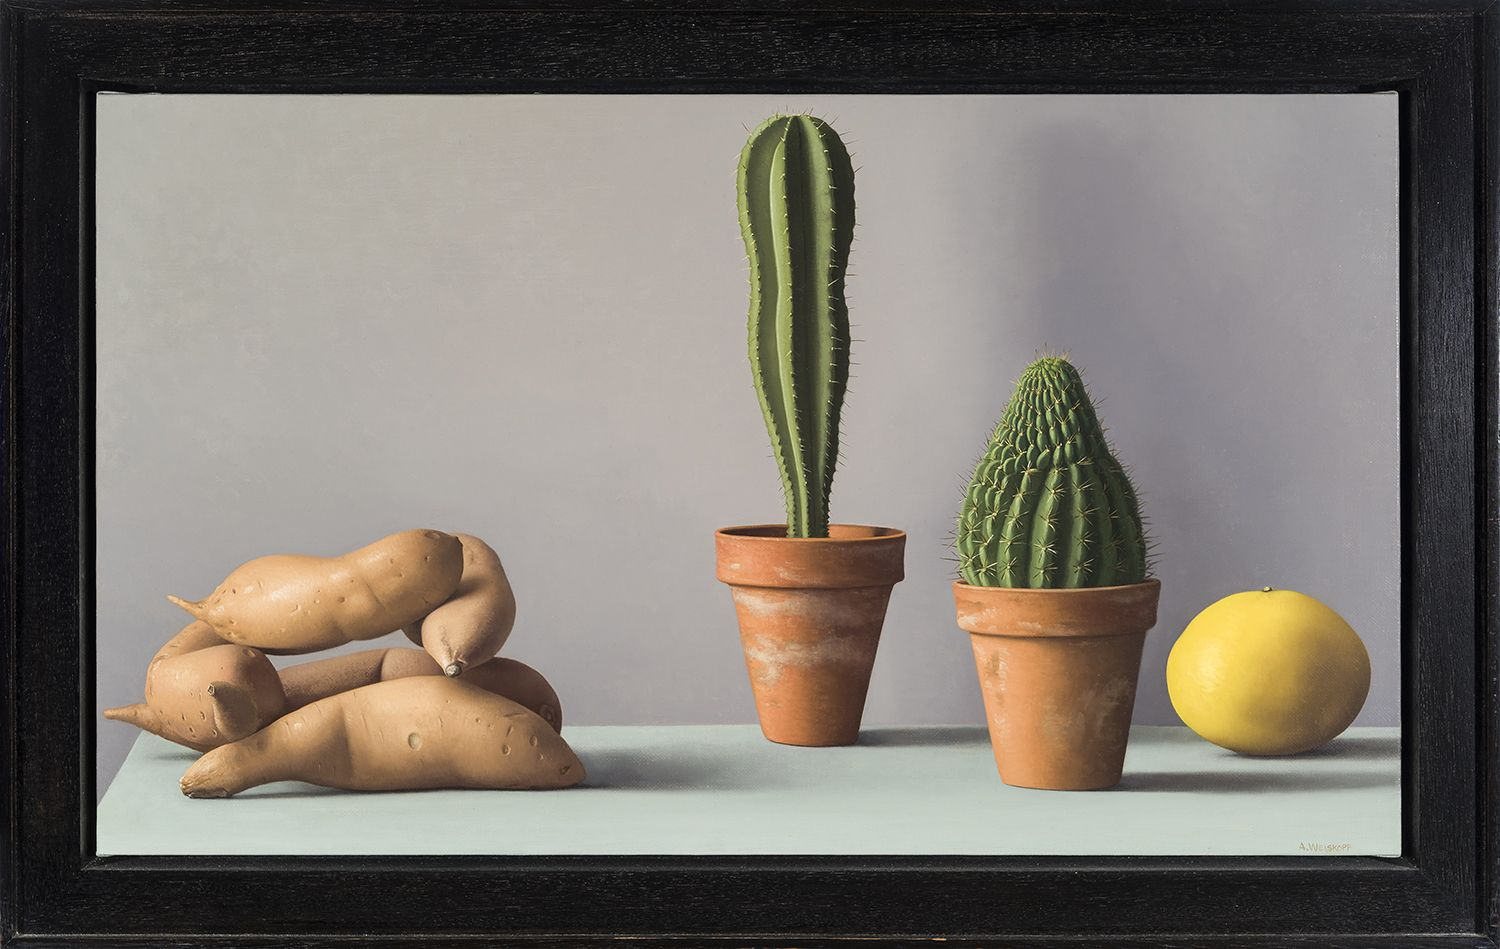 Amy Weiskopf (b. 1957), Still Life with Sweet Potatoes and Cacti, 2006